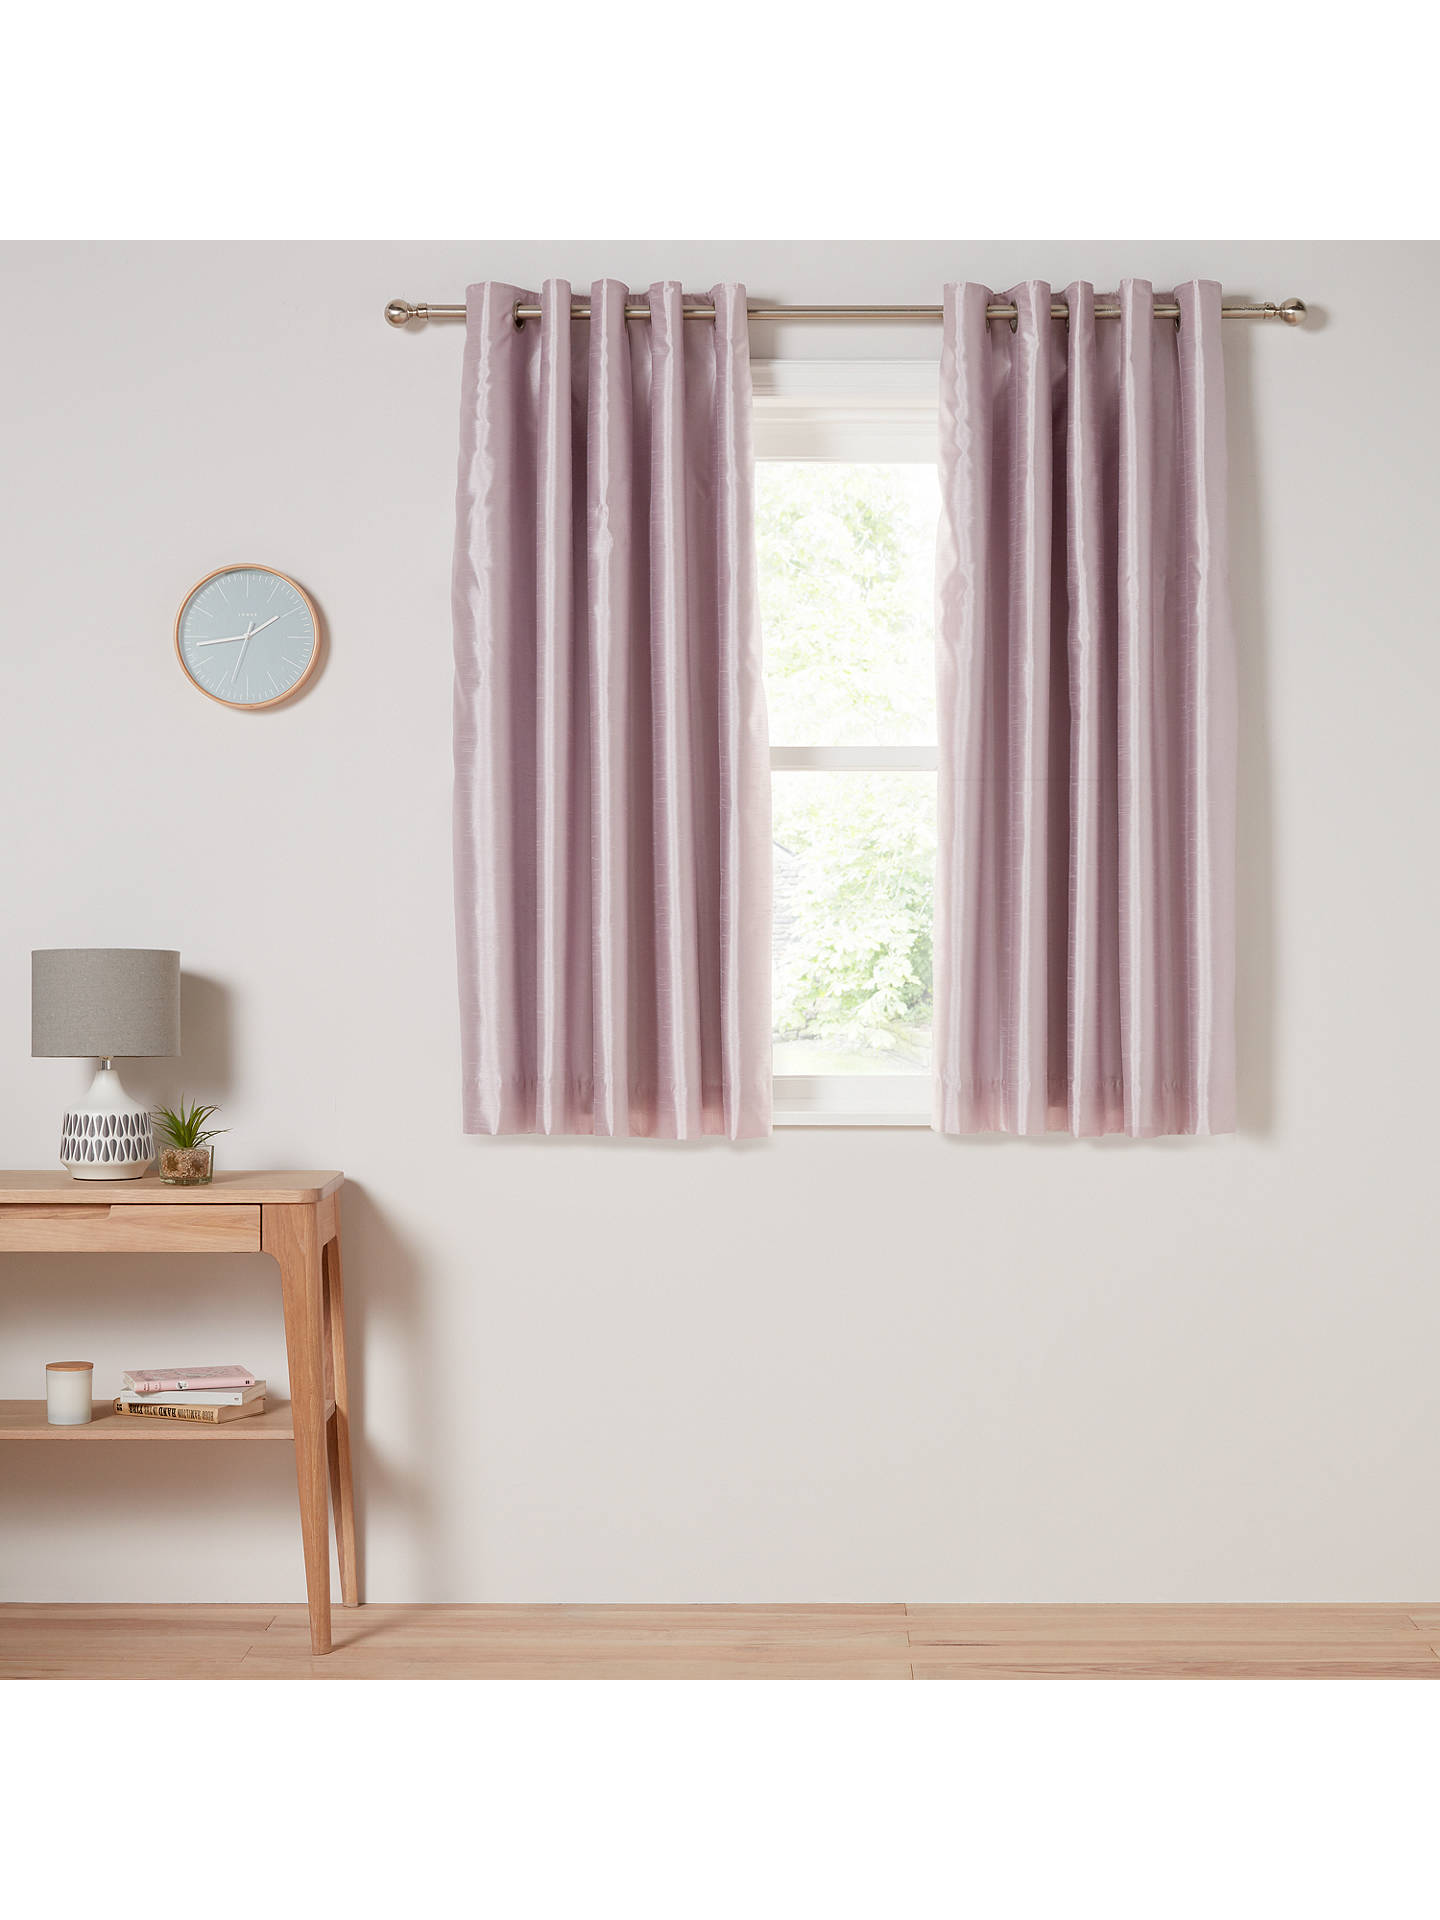 Buy John Lewis & Partners Faux Silk Pair Blackout Lined Eyelet Curtains, Wisteria, W228 x Drop 137cm Online at johnlewis.com